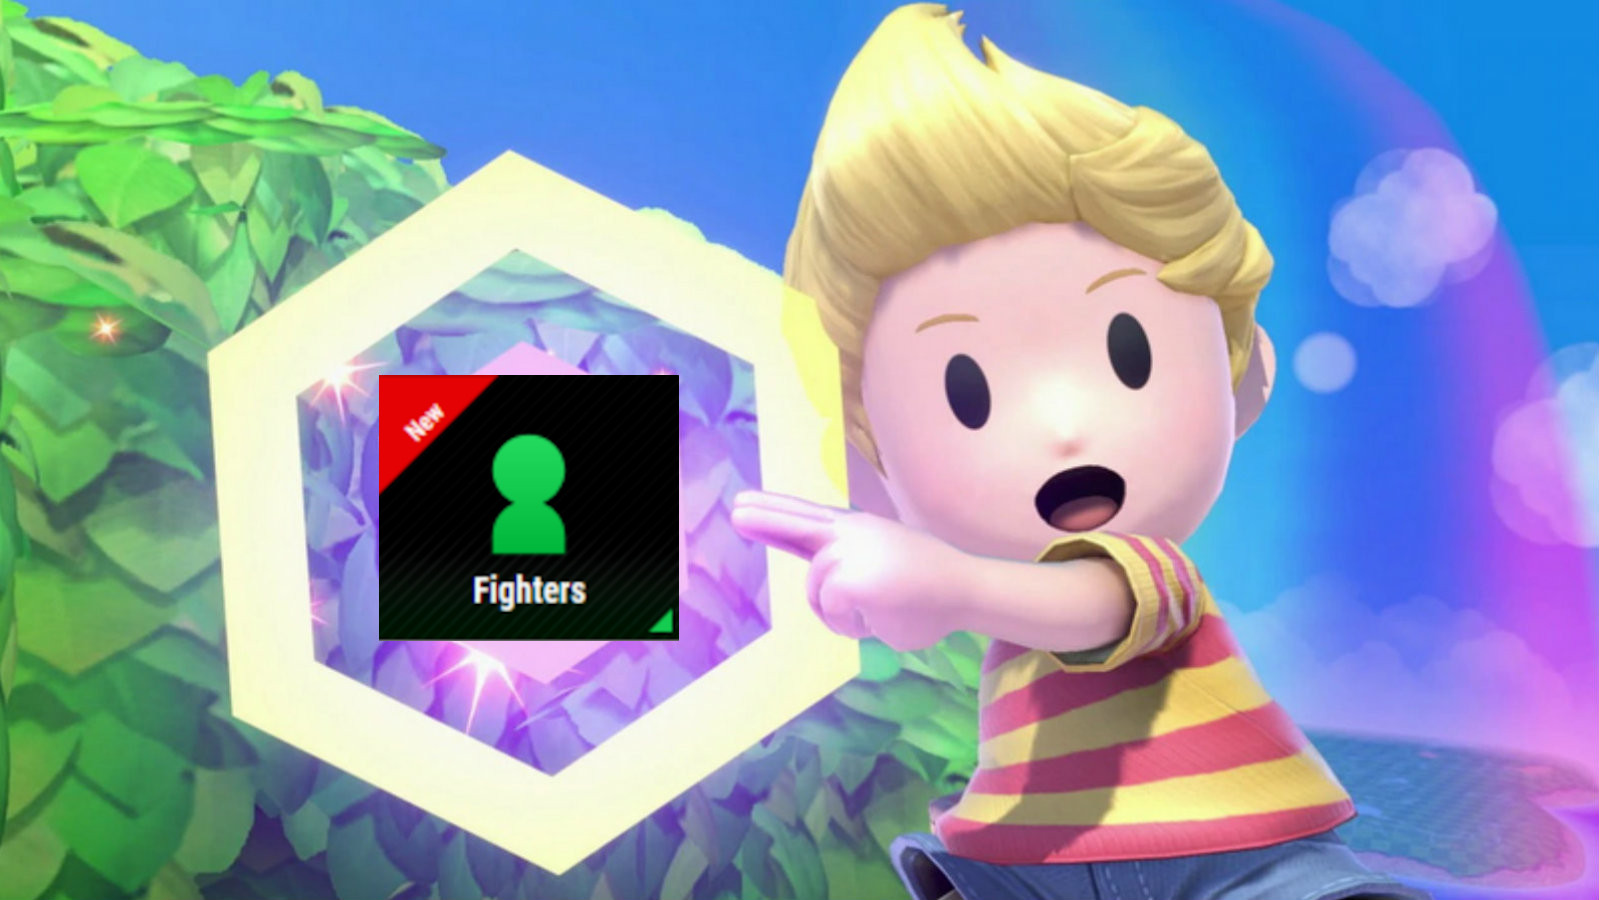 Lucas points at new Smash Ultimate DLC